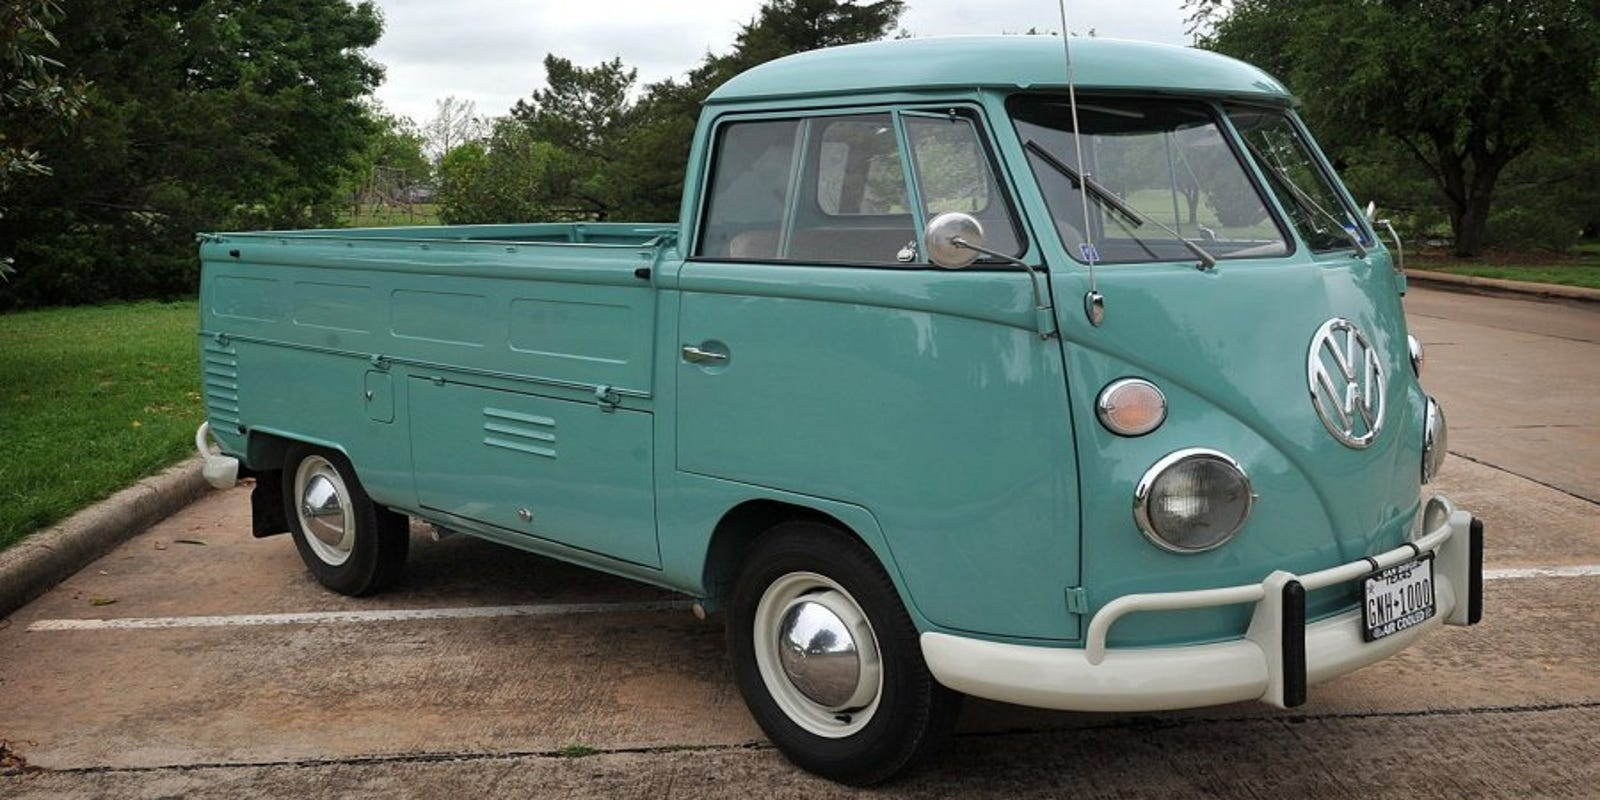 Vintage Vw Van Holds Memories For Owner